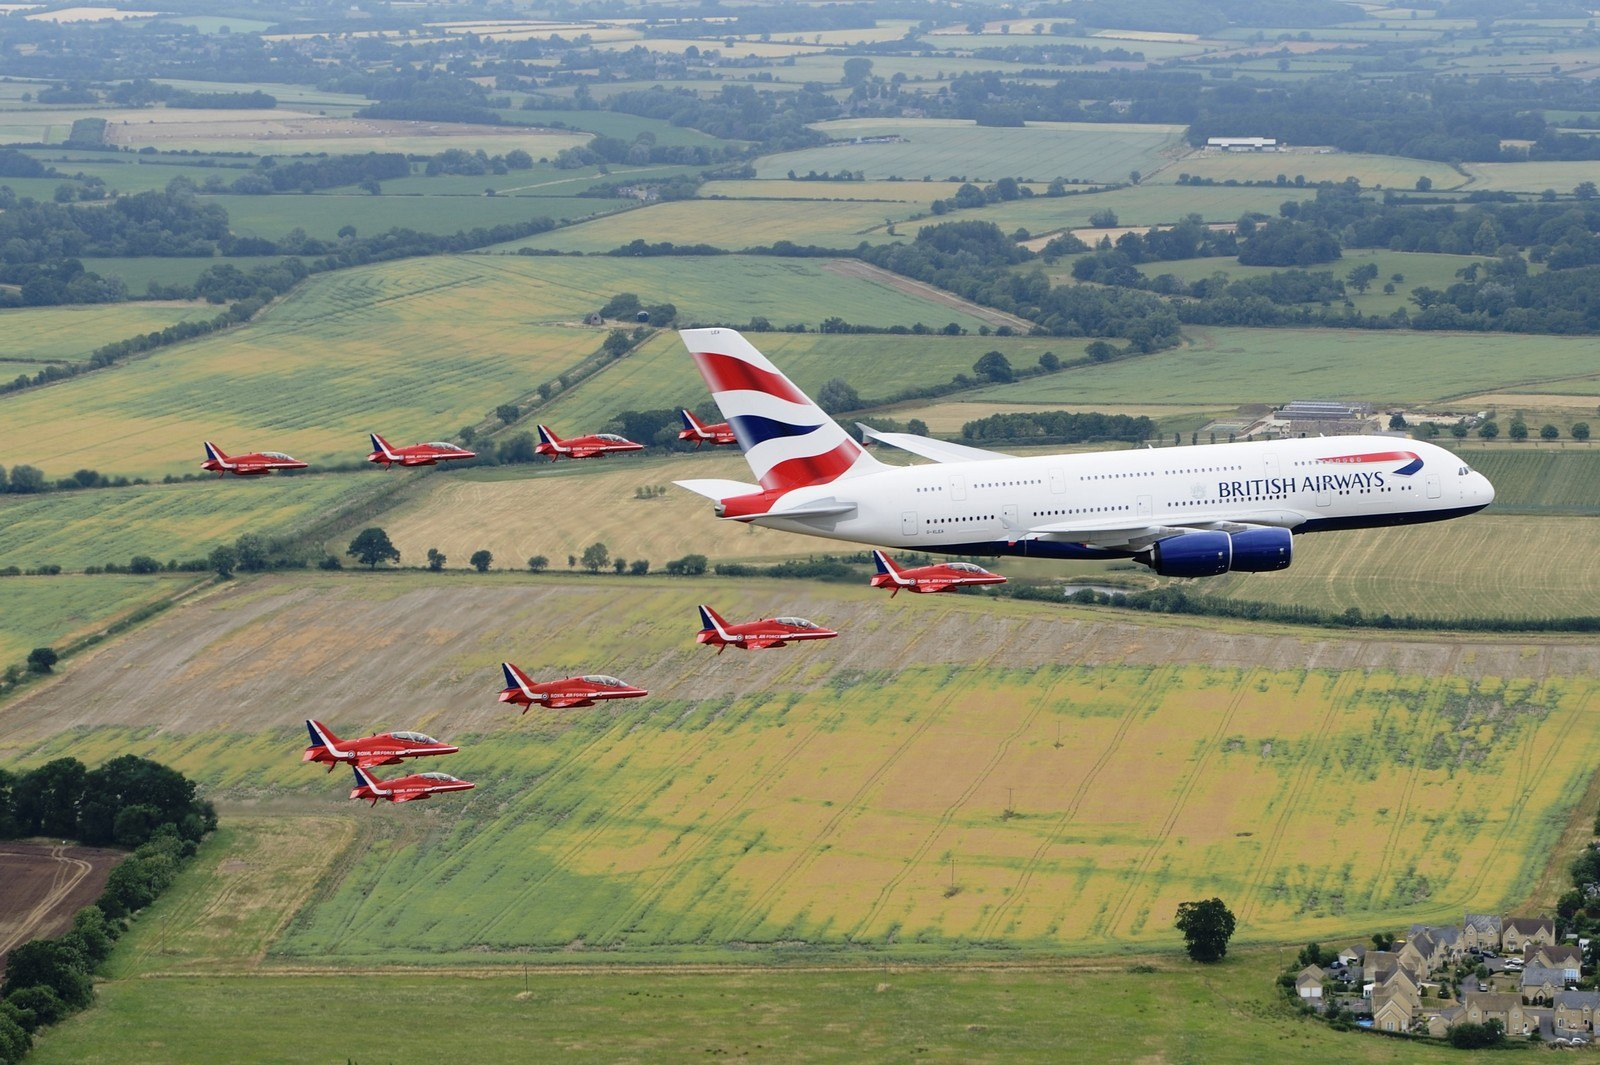 british air ways Book flights to london, new york and many other international holiday destinations with british airways bacom offer flights, hotels, holidays, car rental and more.